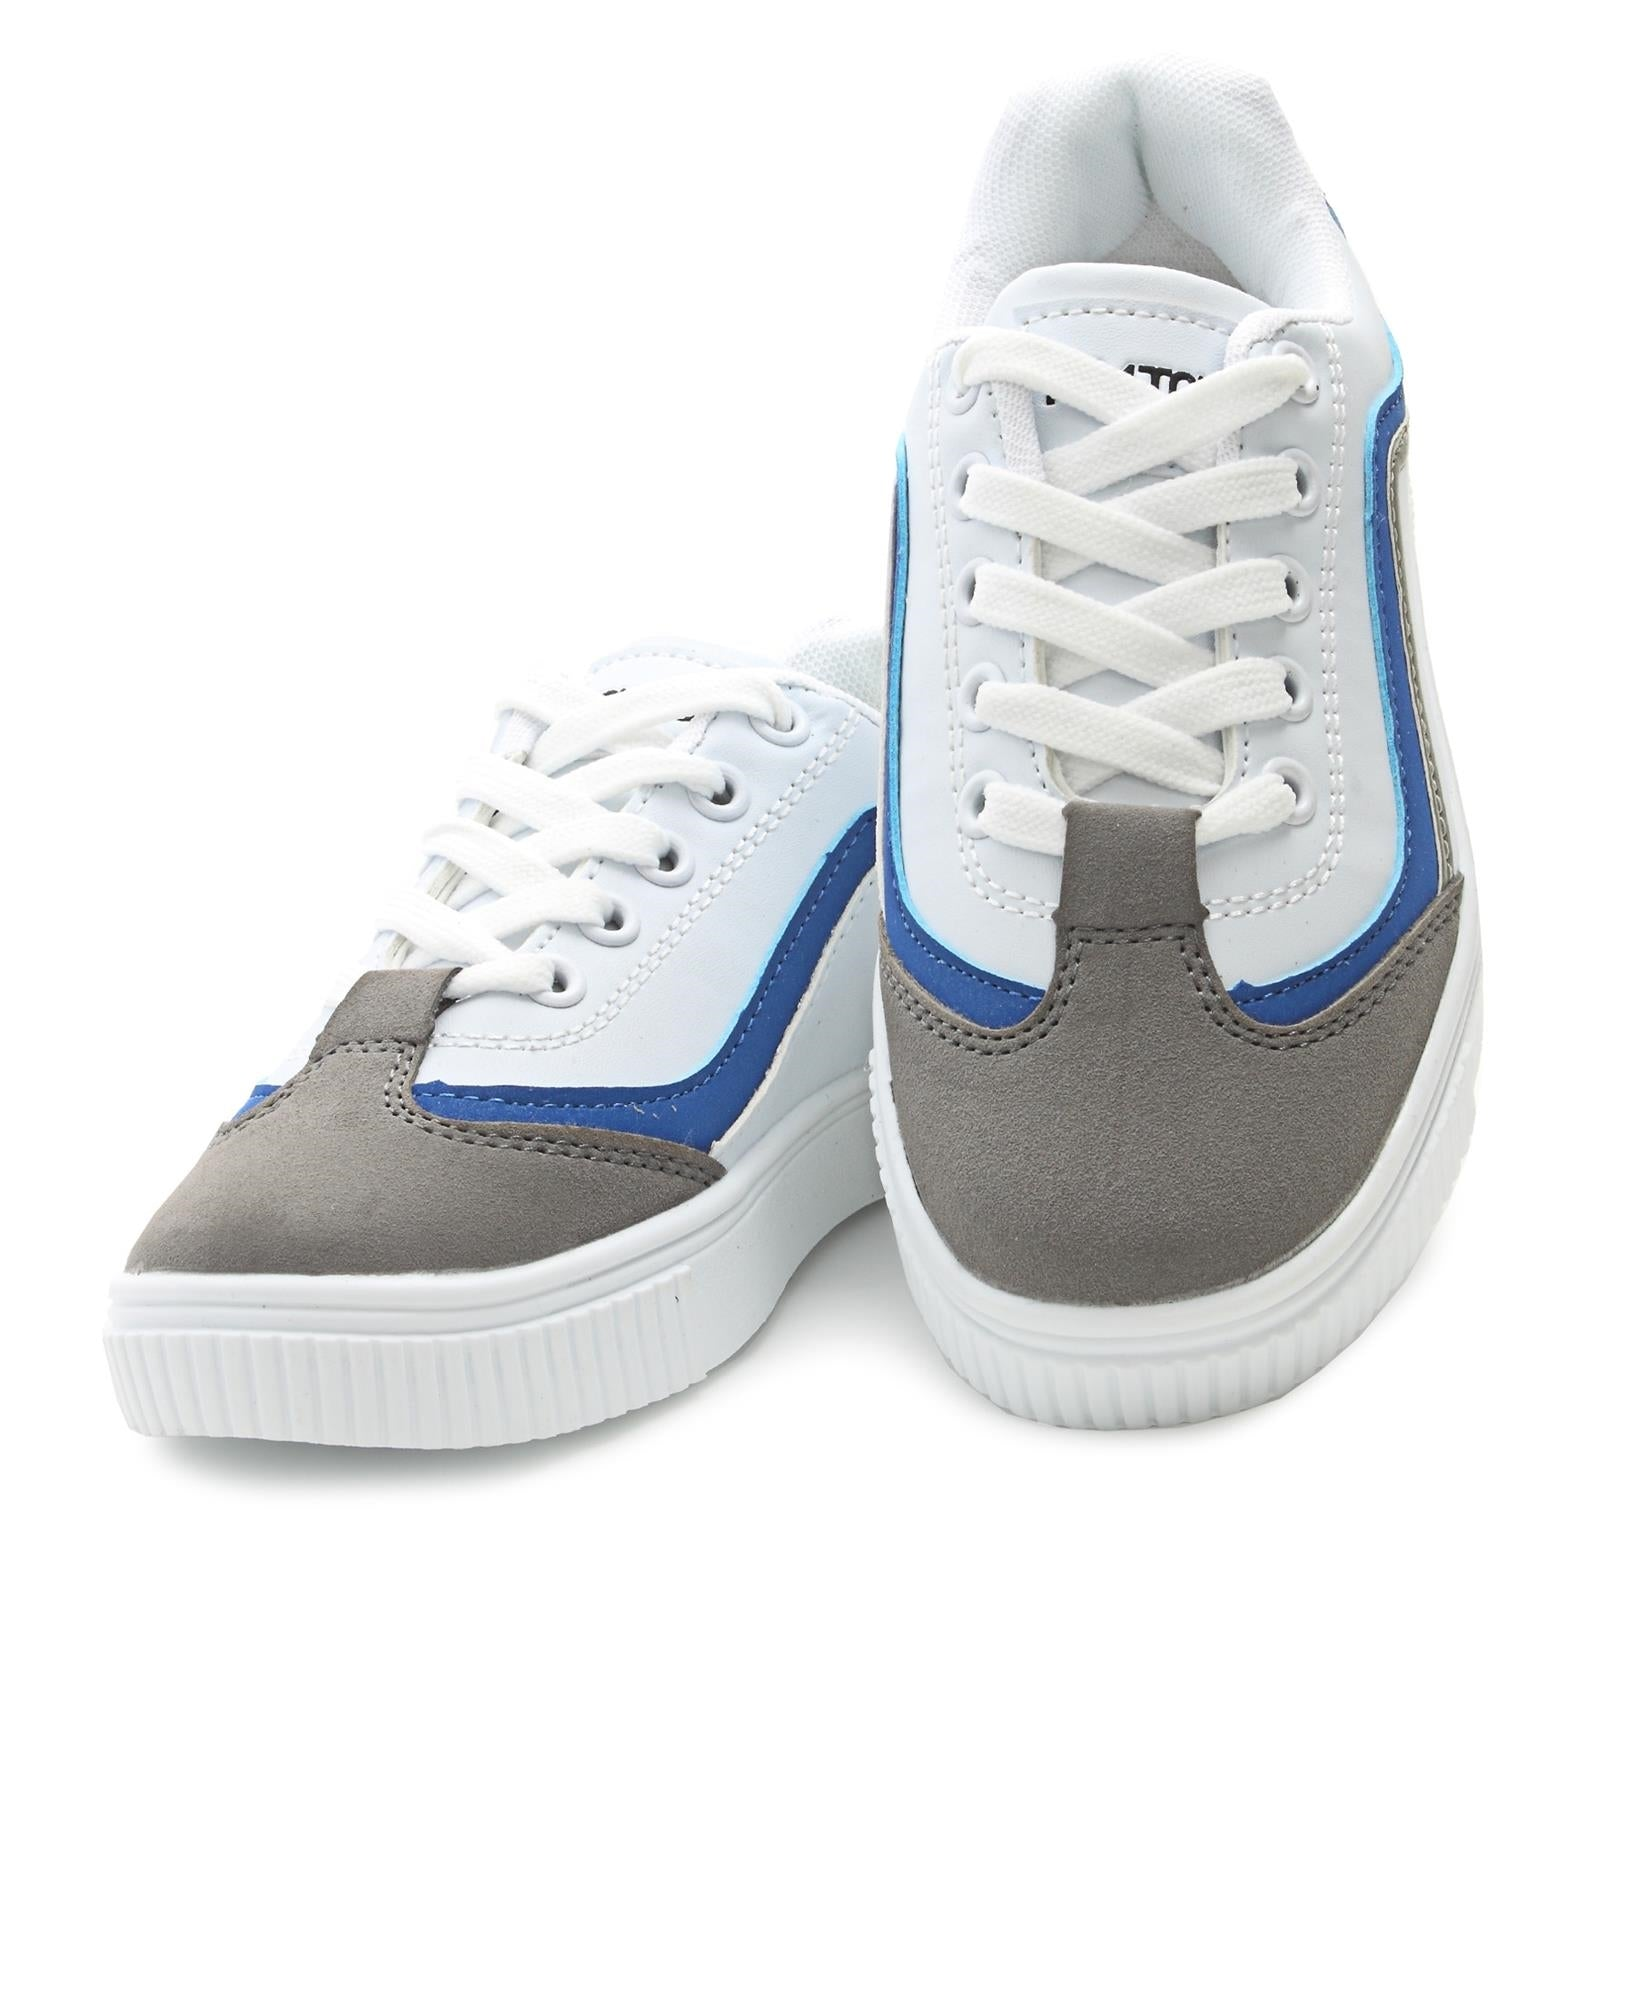 Kids Smooth Sneakers - Blue